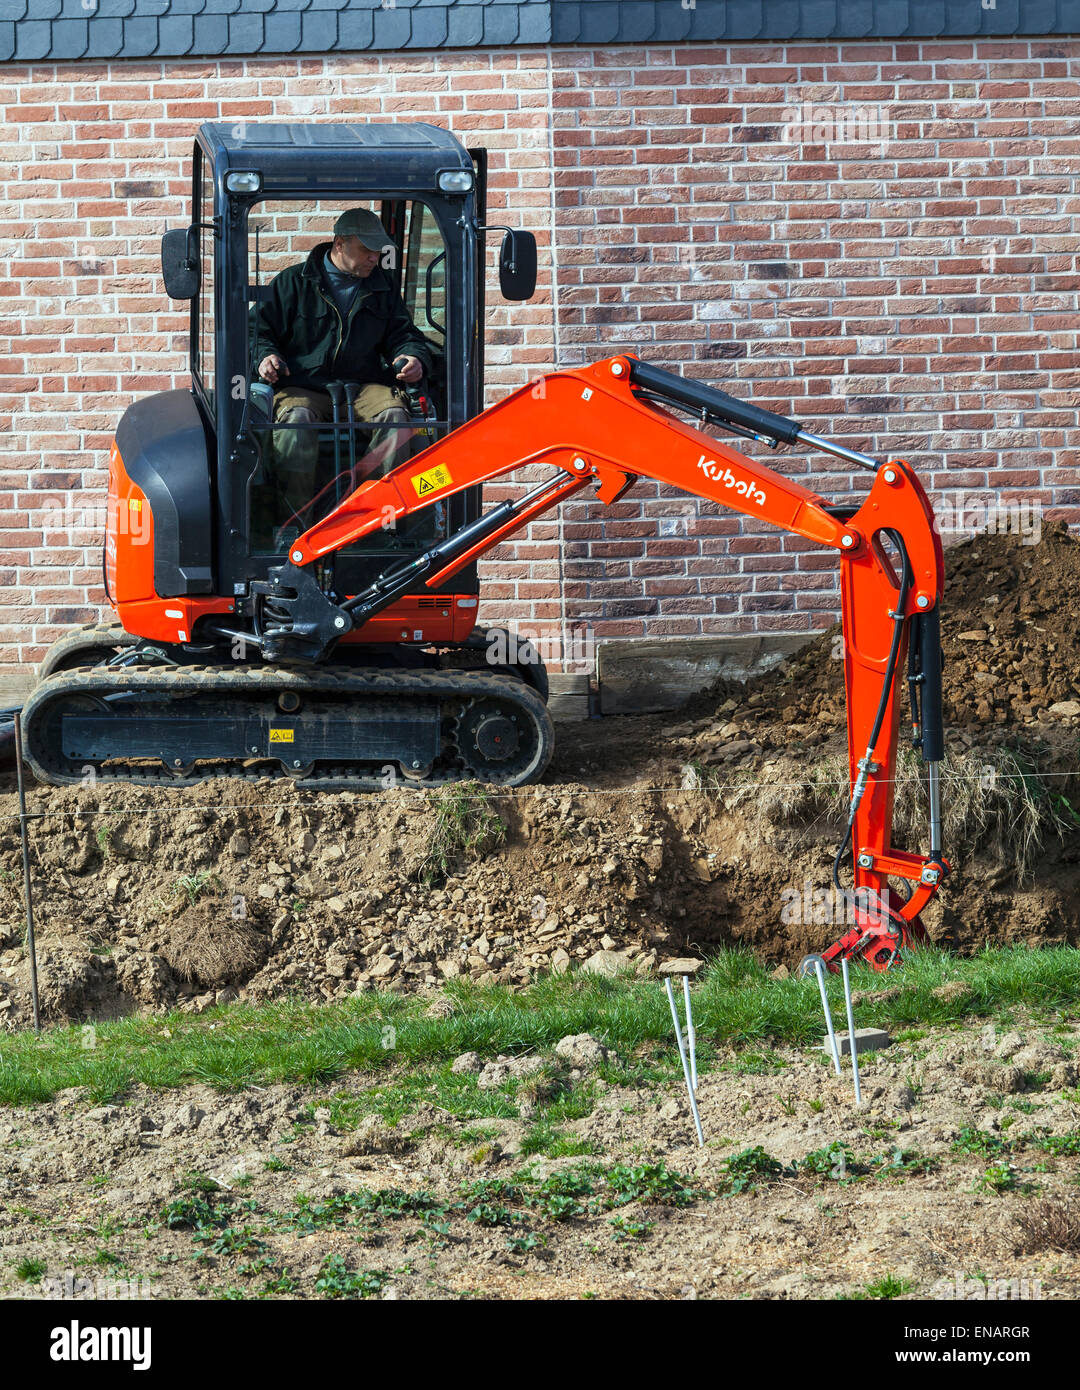 Excavator in operation. Stock Photo